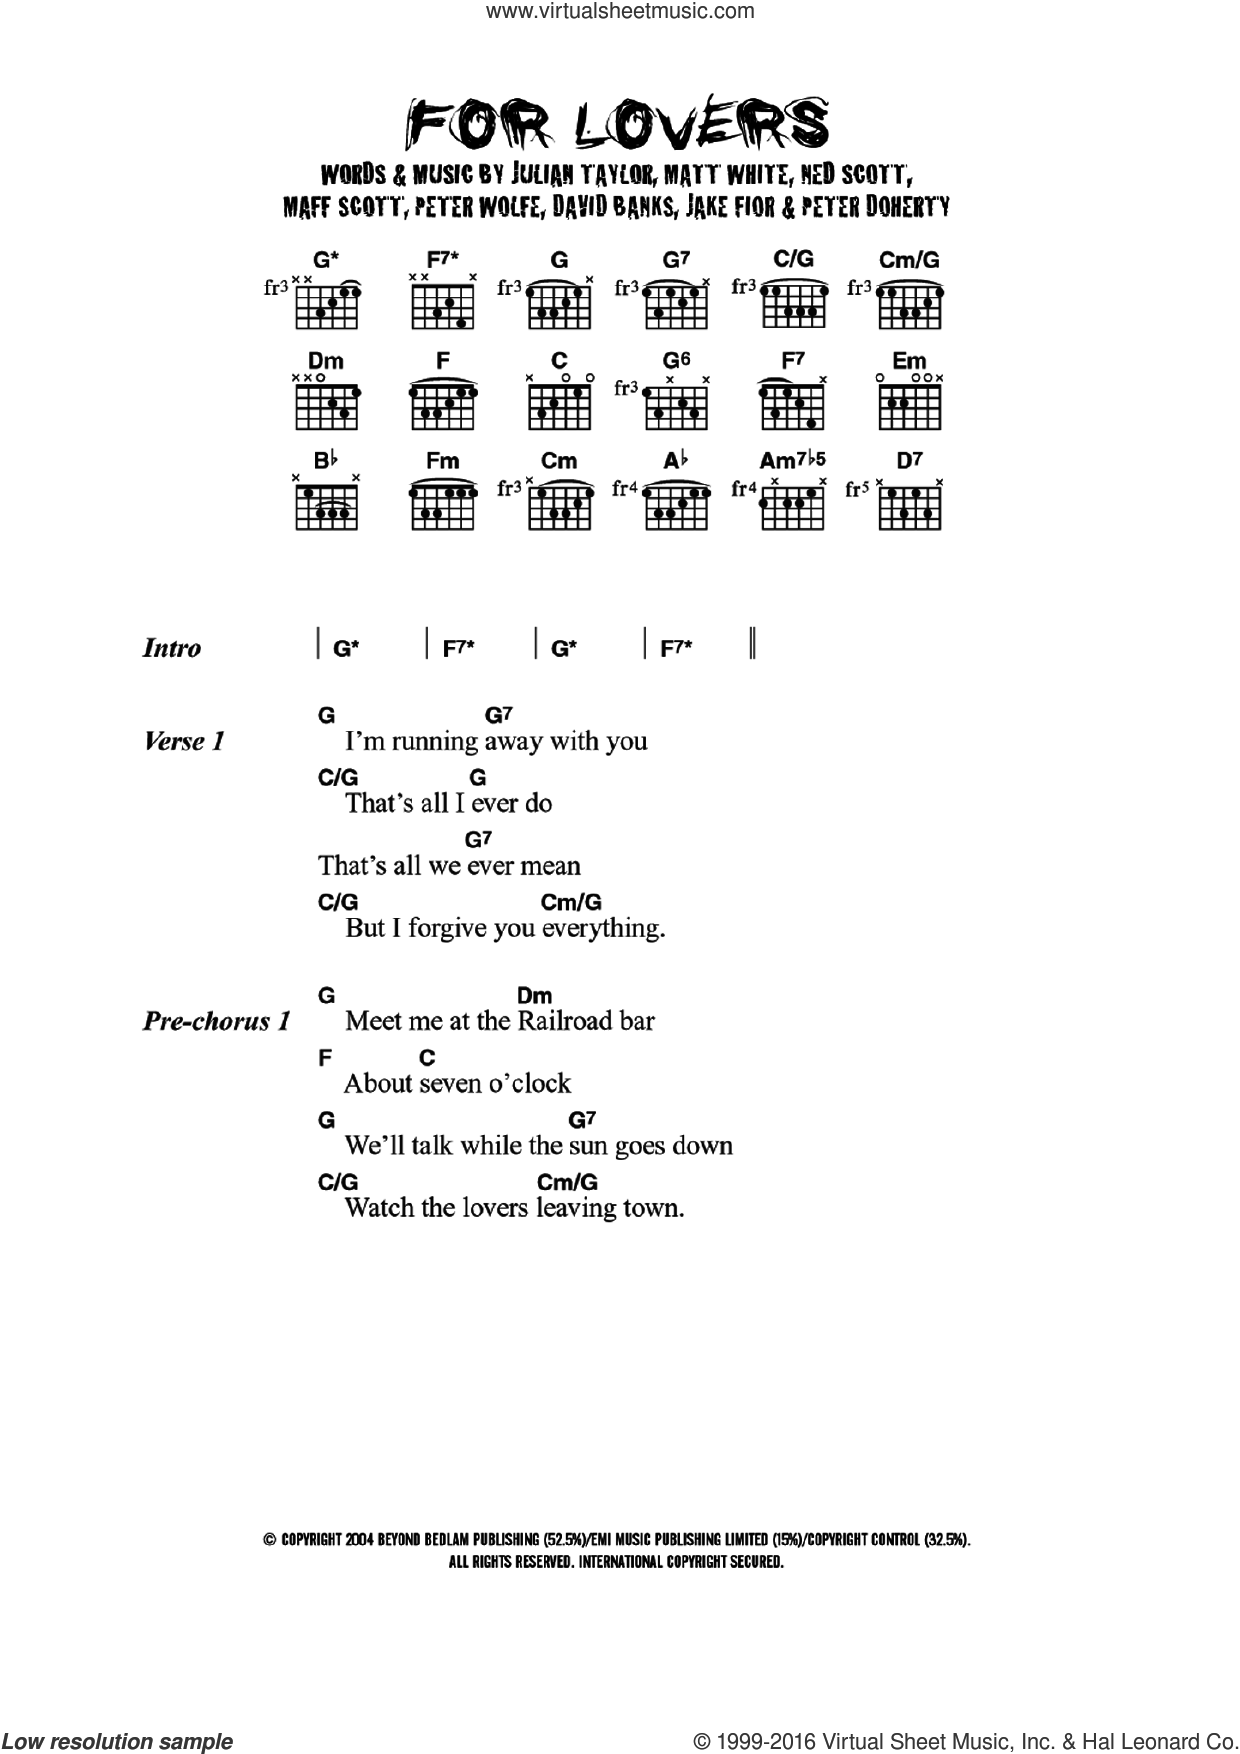 For Lovers (featuring Pete Doherty) sheet music for guitar (chords) by Wolfman, David Banks, Jake Fior, Julian Taylor, Maff Scott, Matt White, Ned Scott, Pete Doherty and Peter Wolfe, intermediate skill level